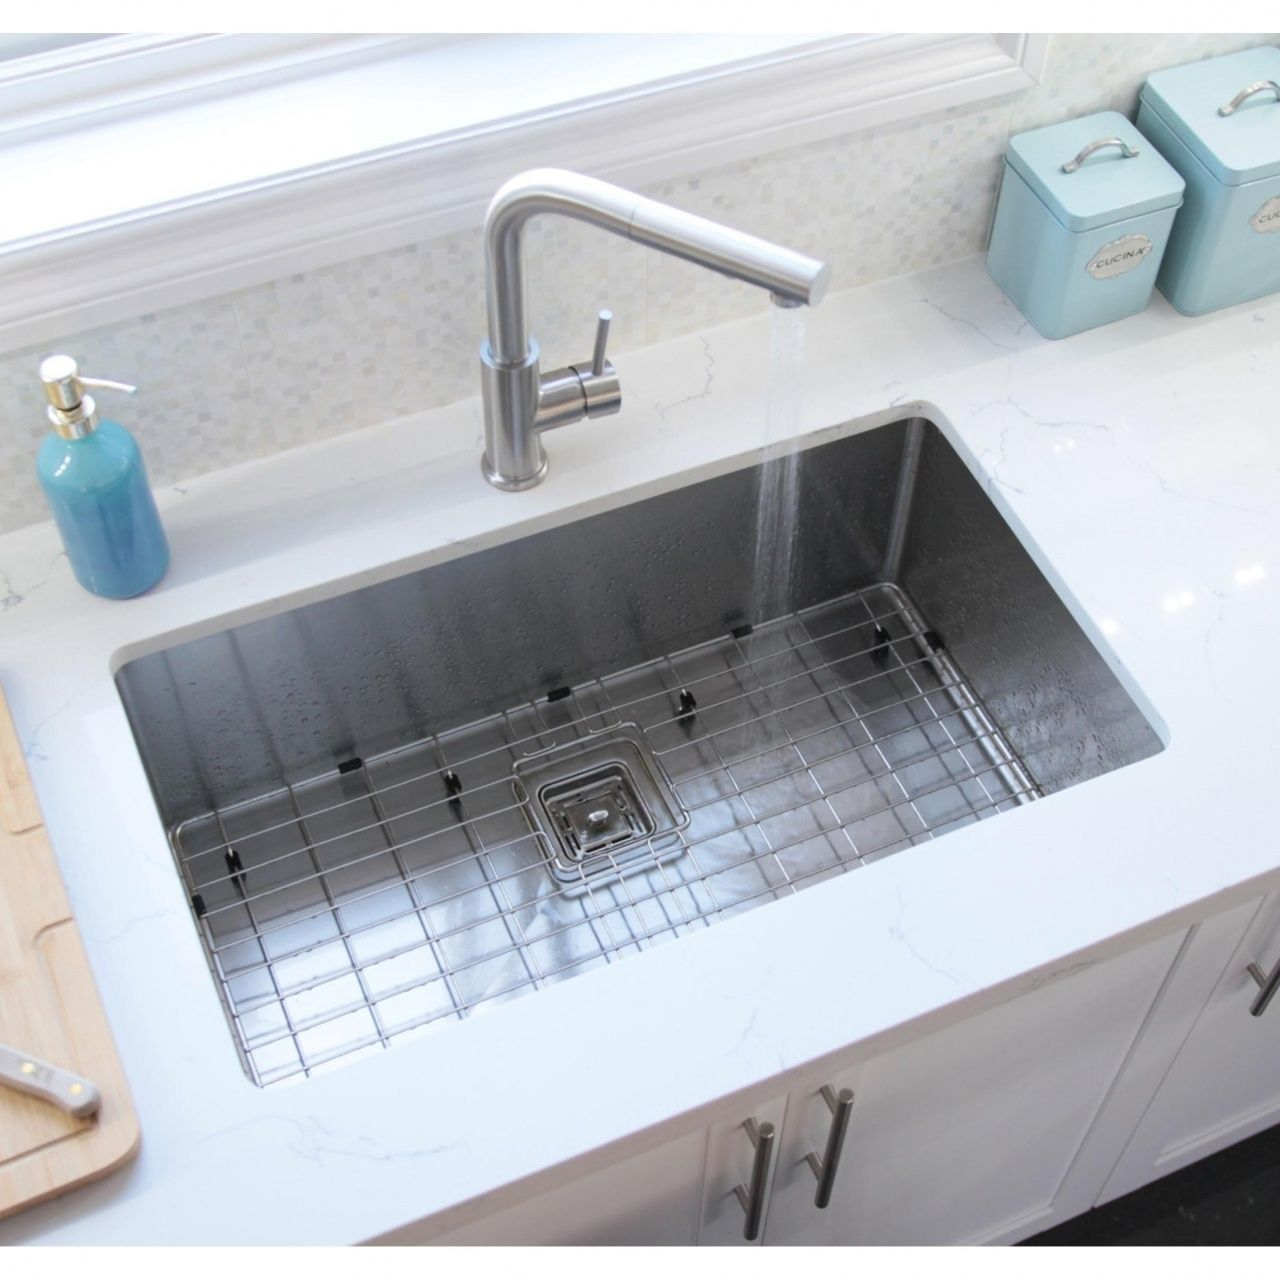 Kitchen Sink Size For 30 Inch Cabinet In 2020 Commercial Kitchen Sinks Kitchen Sink Sizes Undermount Kitchen Sinks